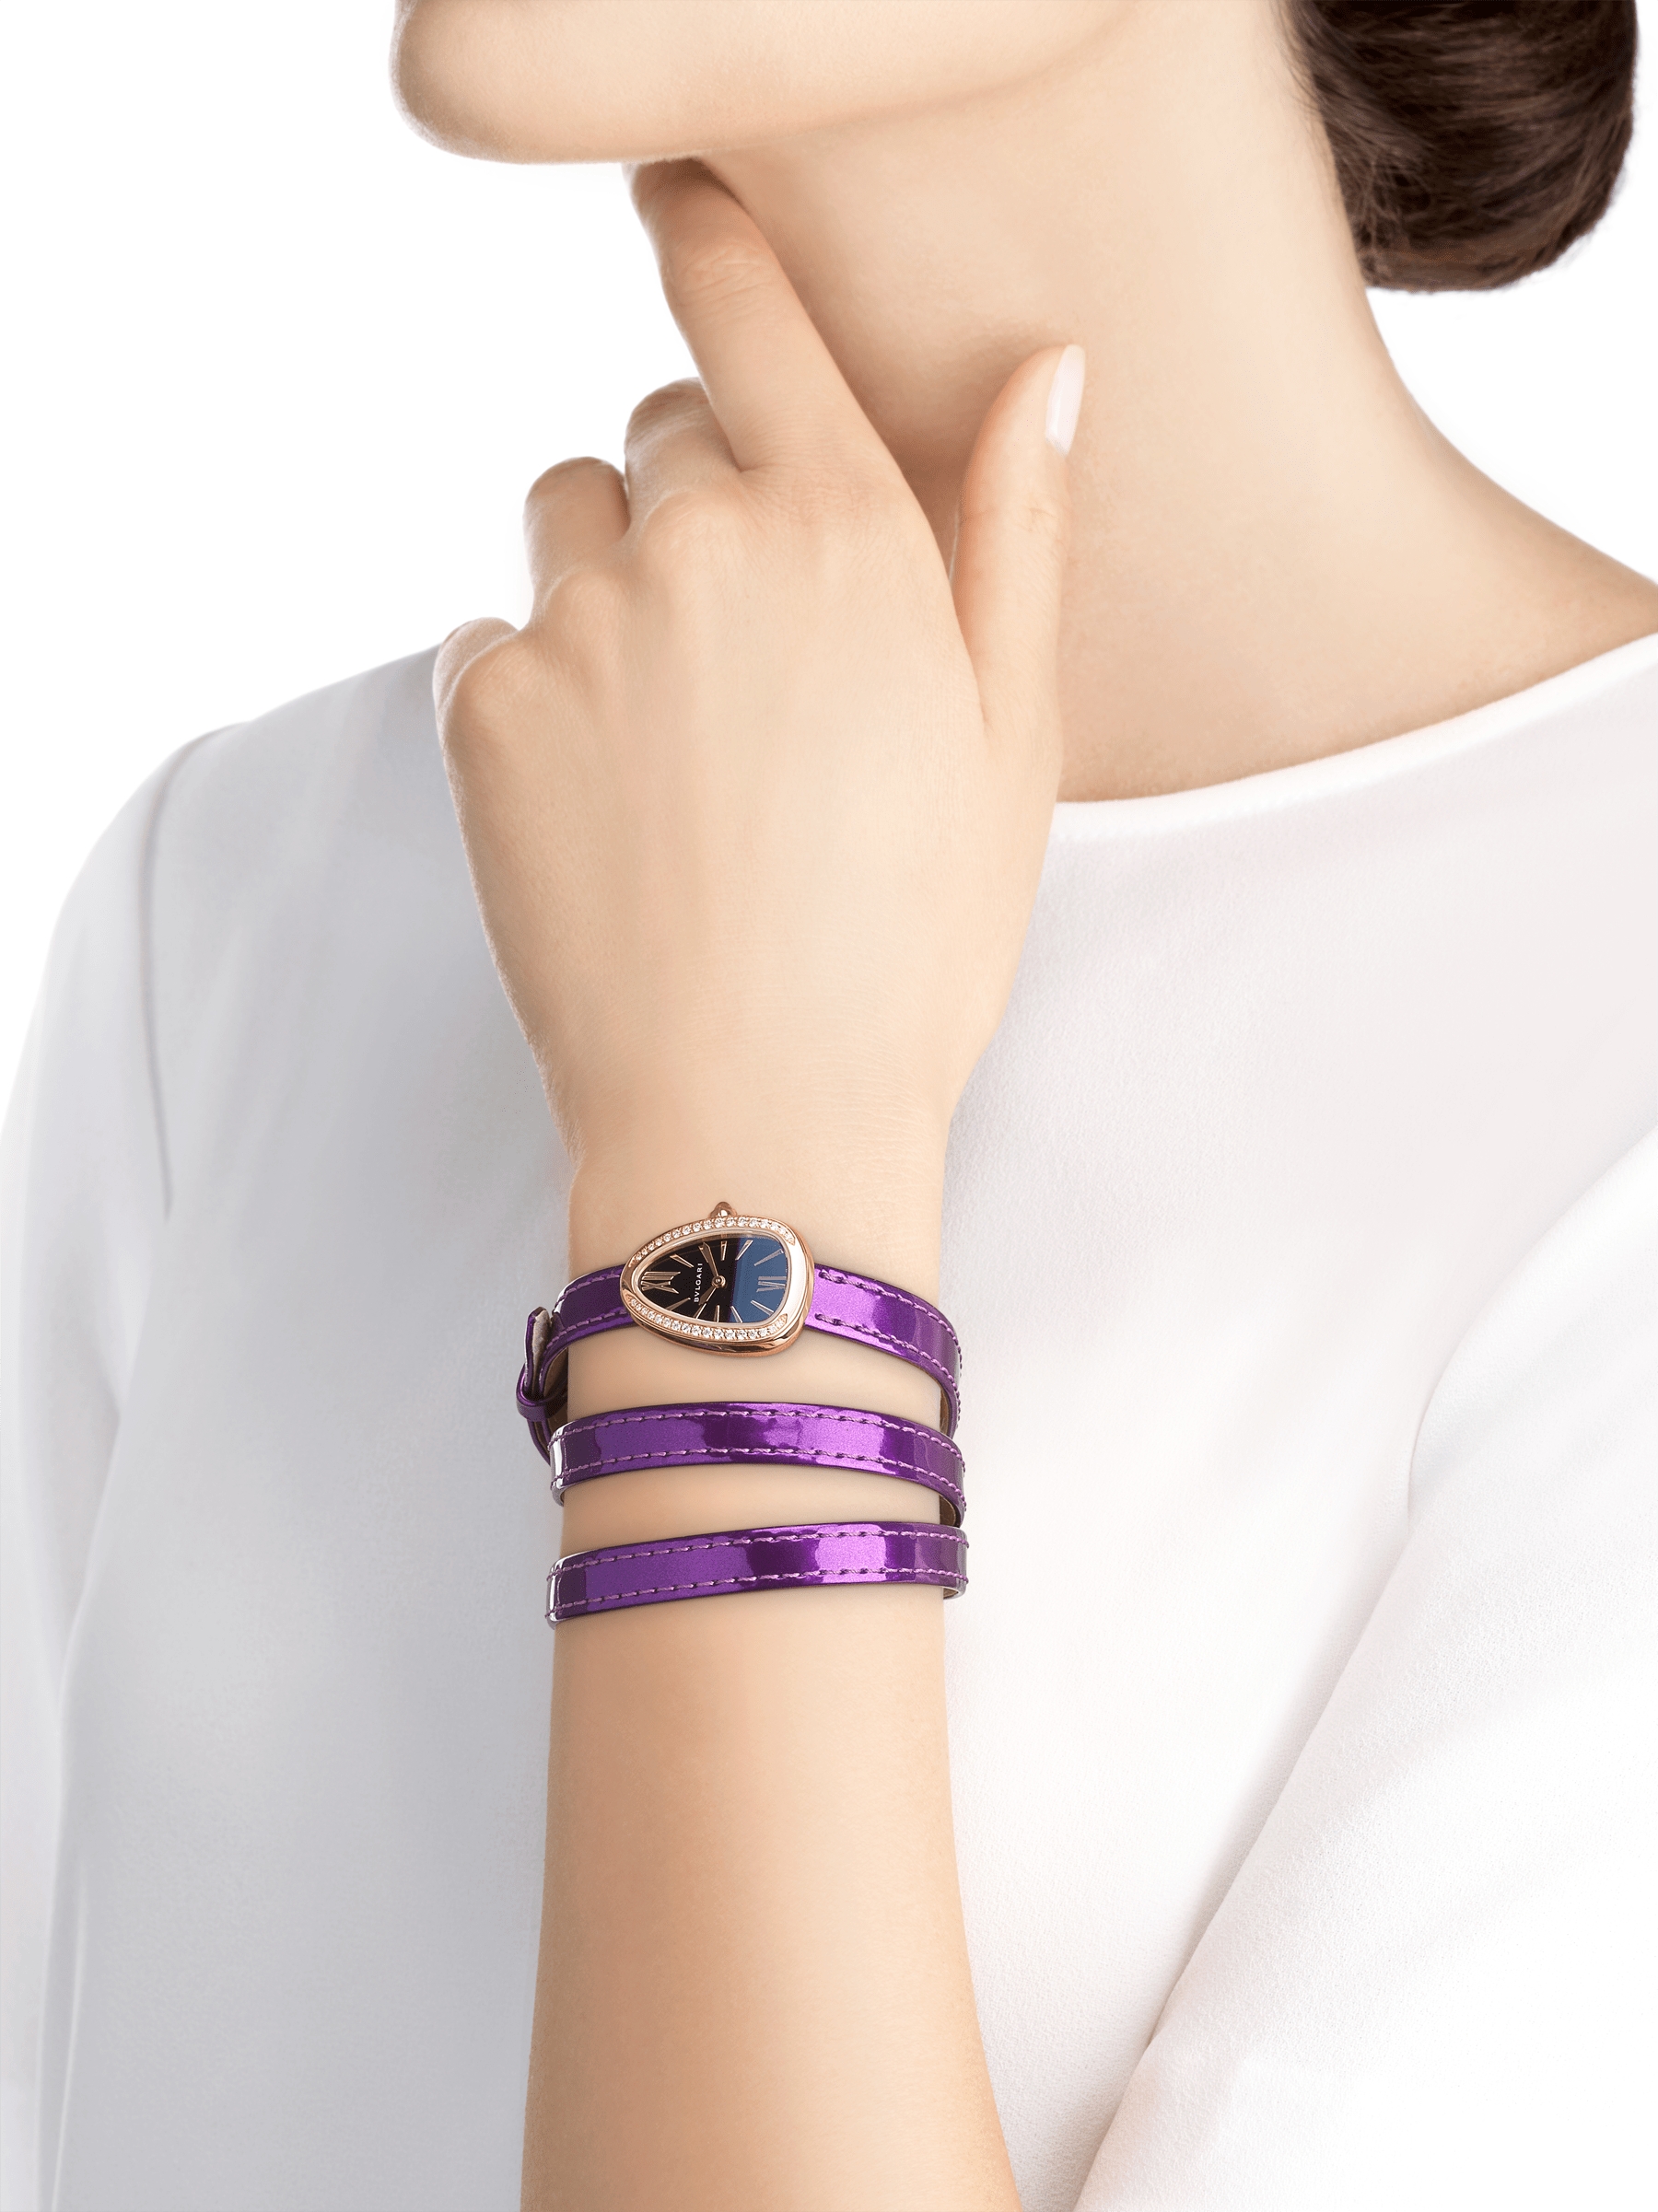 Serpenti watch with 18 kt rose gold case set with diamonds, black lacquered dial and interchangeable qadruple spiral bracelet in wisteria jade brushed metallic calf leather. 102969 image 3